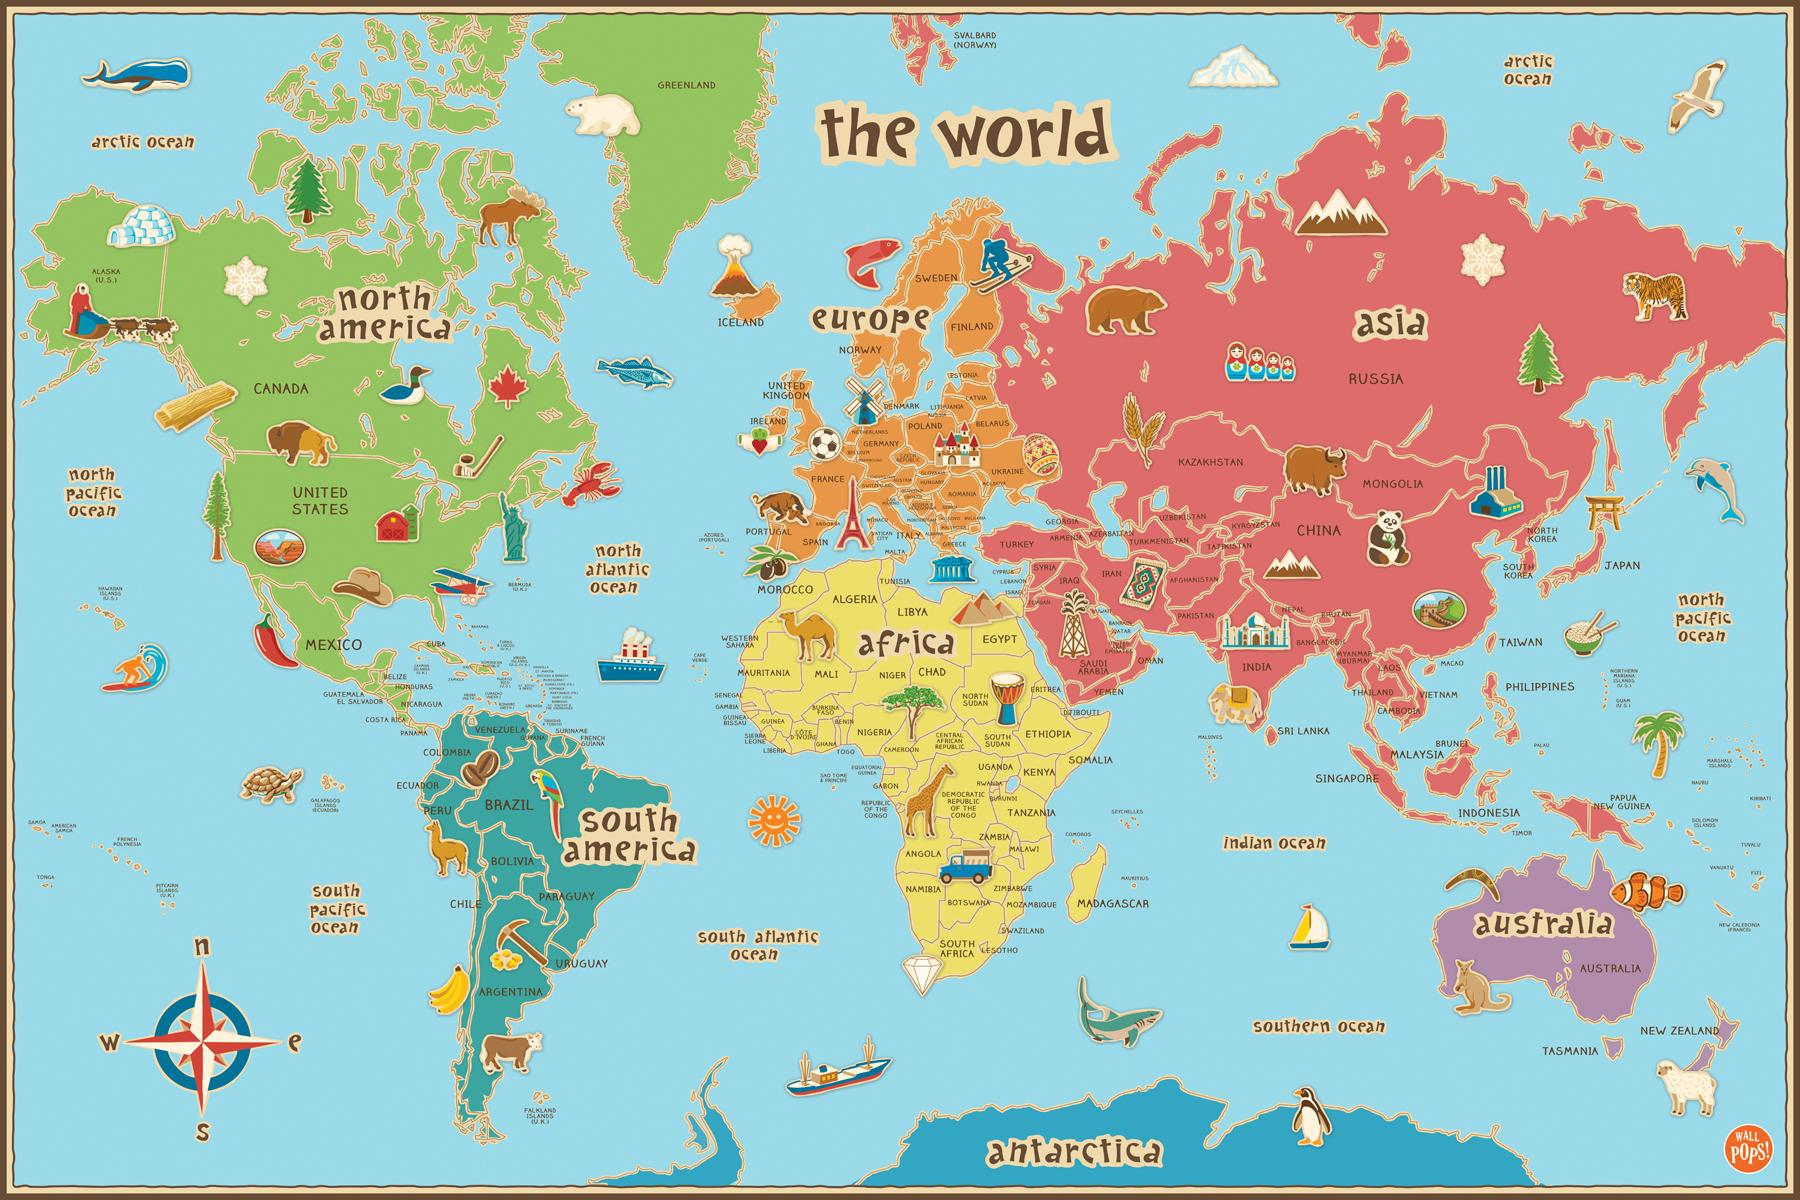 Map Of The World For Kids Amazon.com: Wall Pops WPE0624 Kids World Dry Erase Map Decal Wall  Map Of The World For Kids